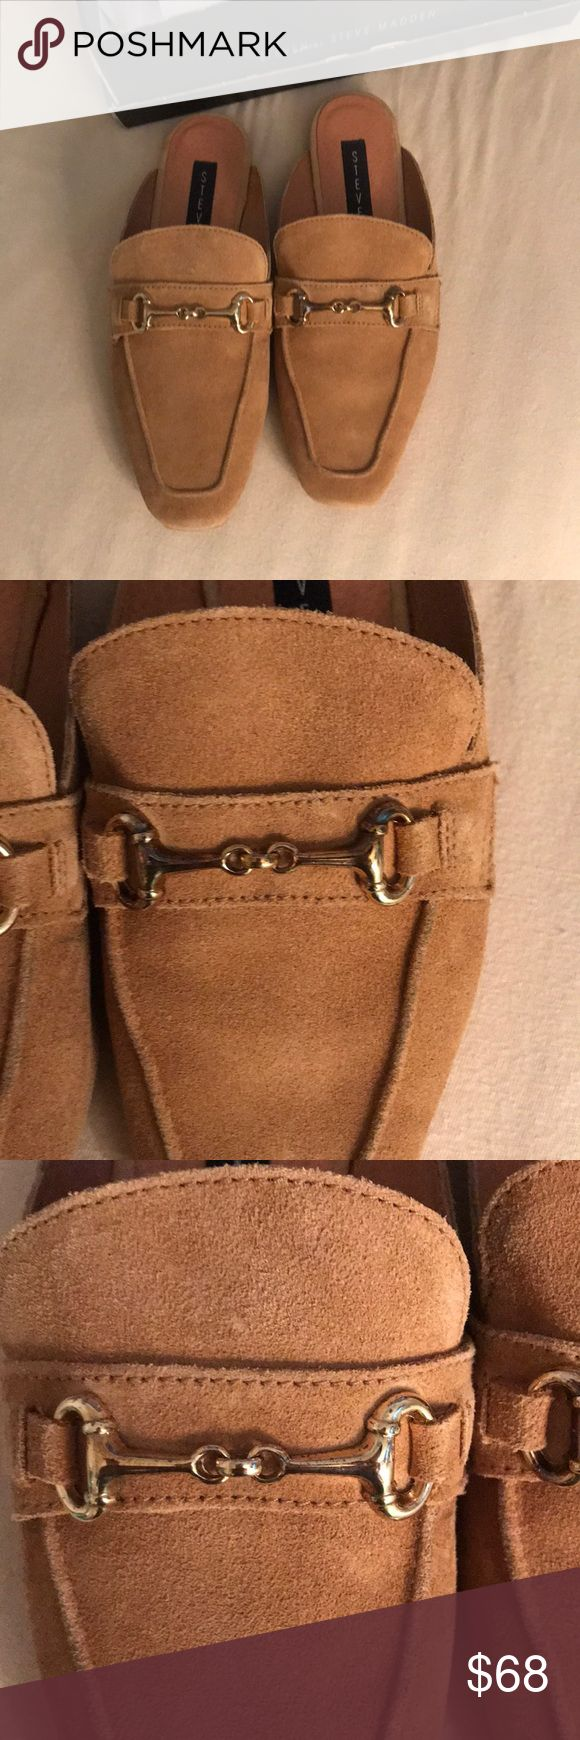 Steven madden tan loafers Steven madden tan loafers come with box the hardware has some color discoloration as pictured size 7 come with box ... in good condition as pictured Steven By Steve Madden Shoes